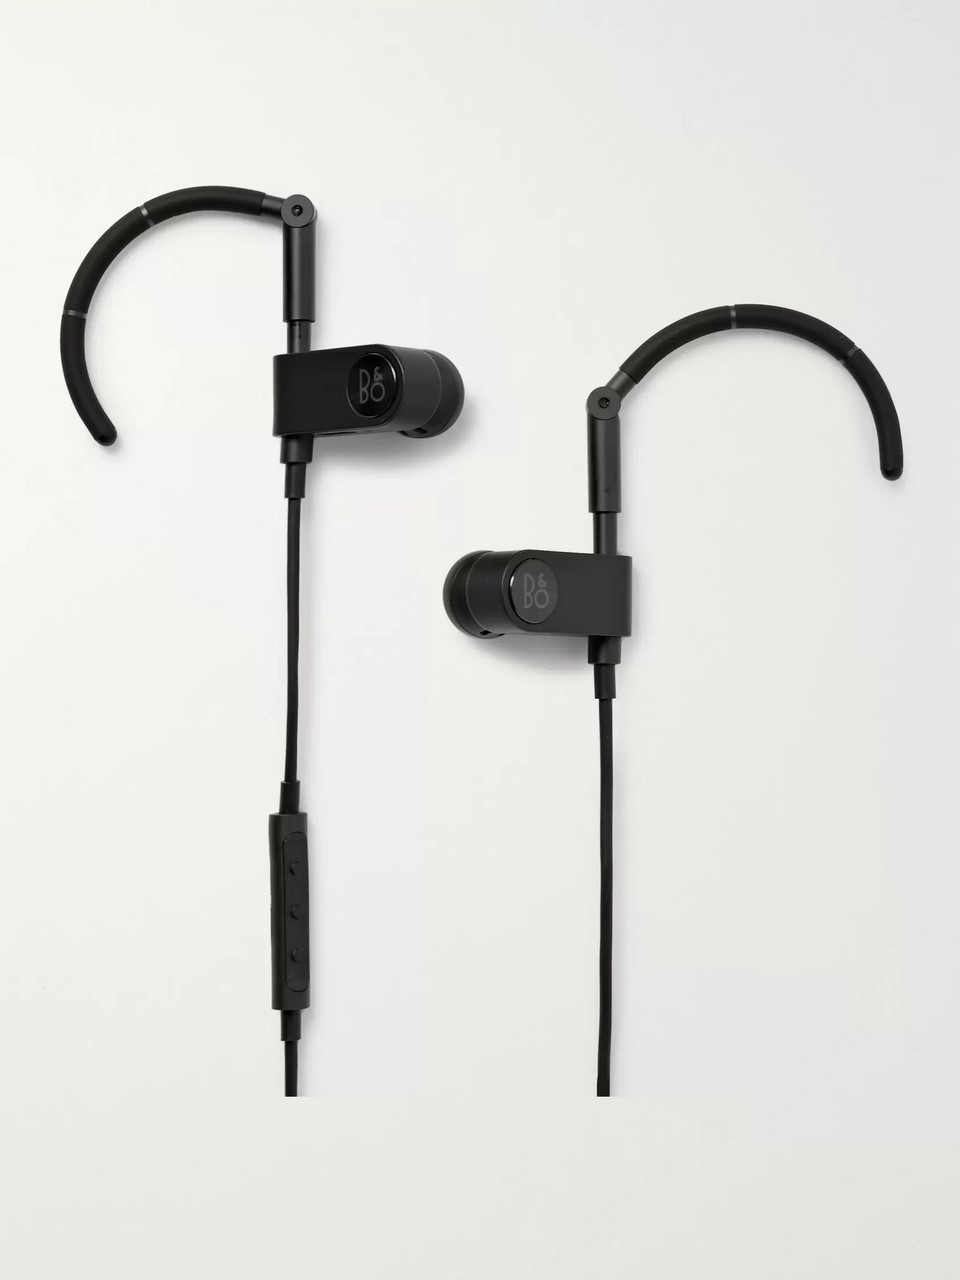 Bang & Olufsen Earset Wireless Earphones